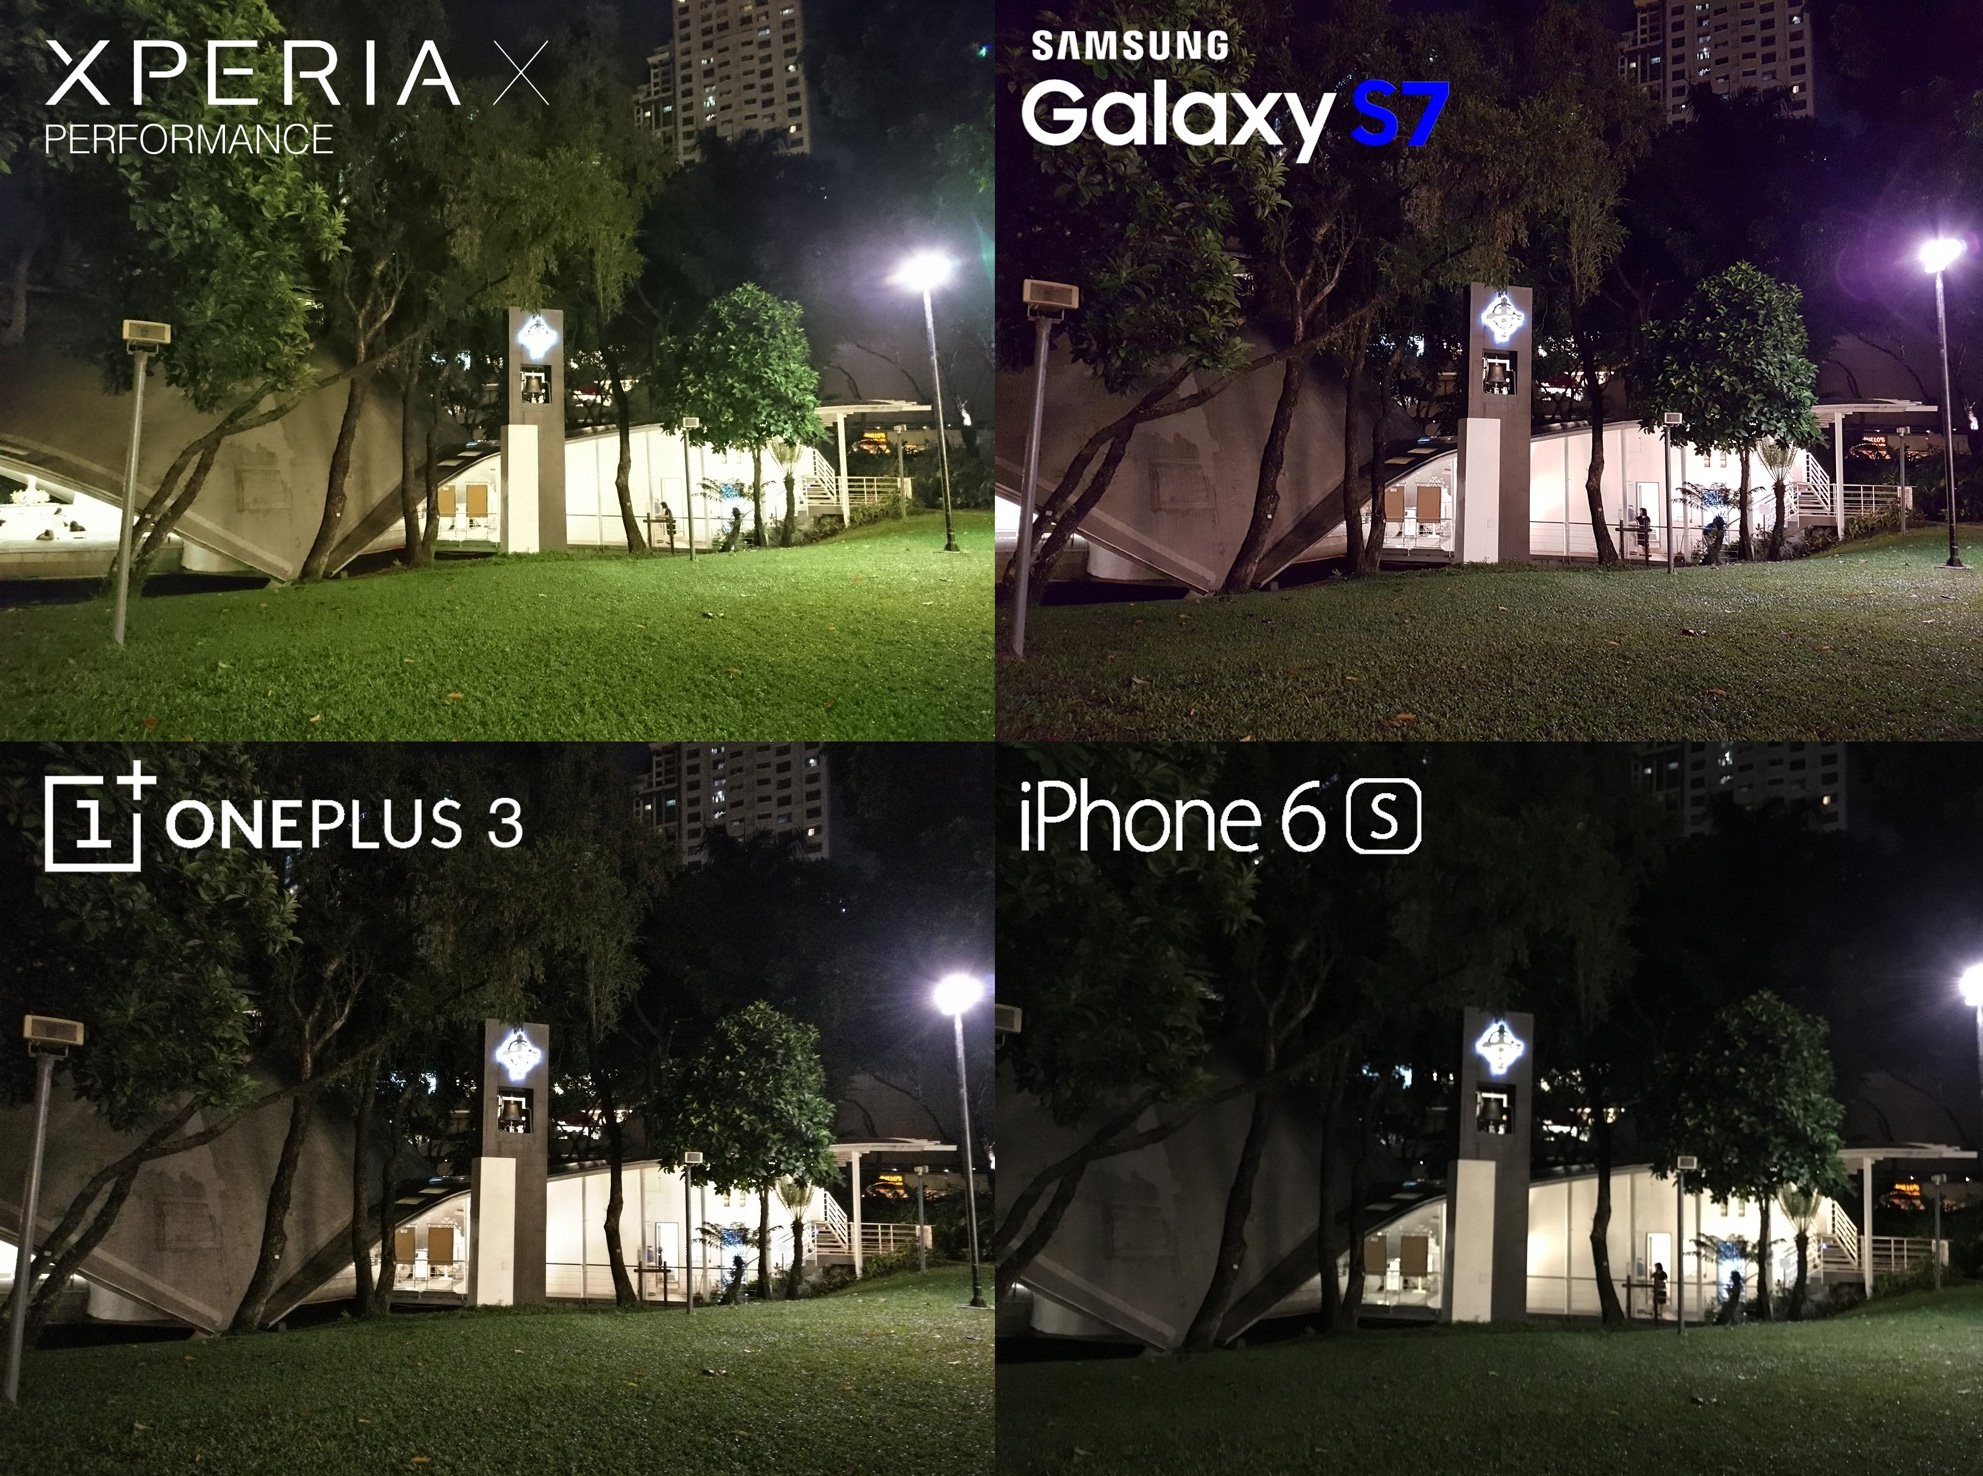 Camera Review Sony Xperia X Performance Samsung Galaxy S7 iPhone 6s 7 OnePlus 3 3